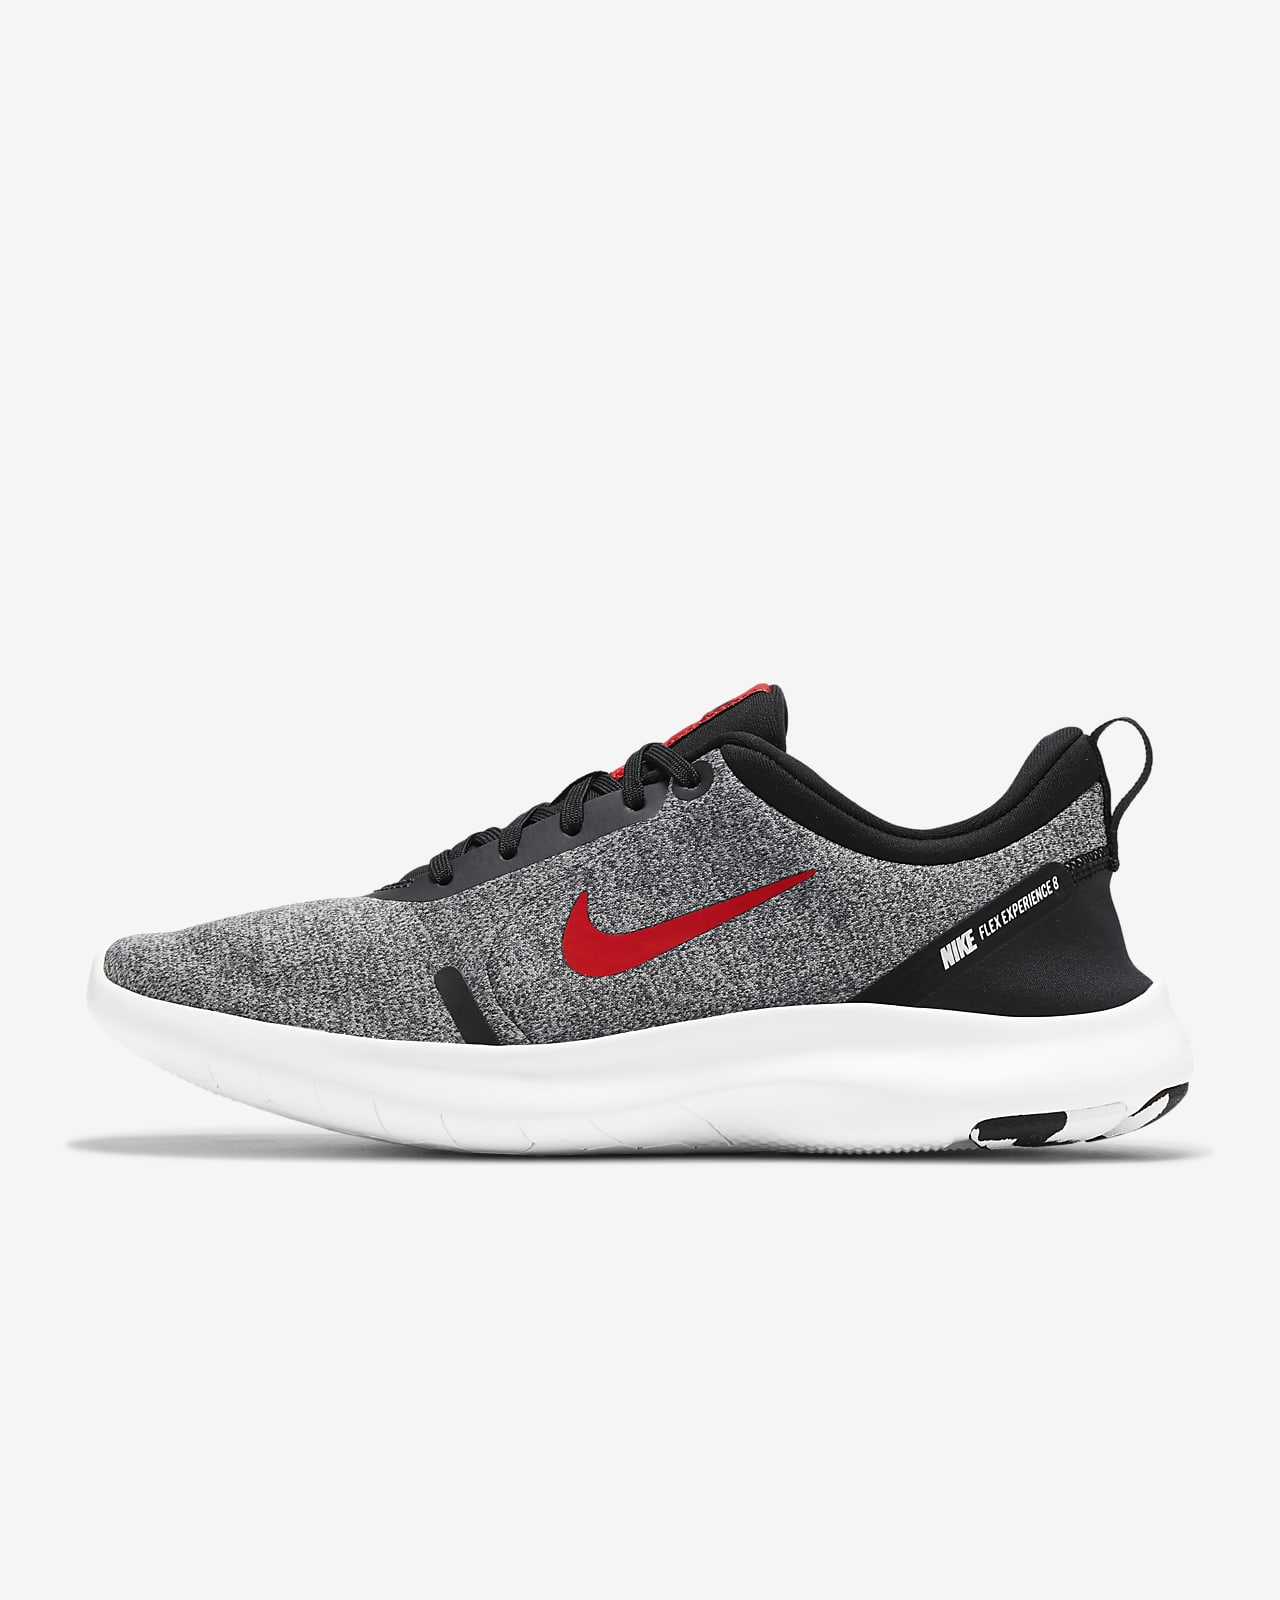 Nike Flex Experience RN 8 Men's Running Shoe